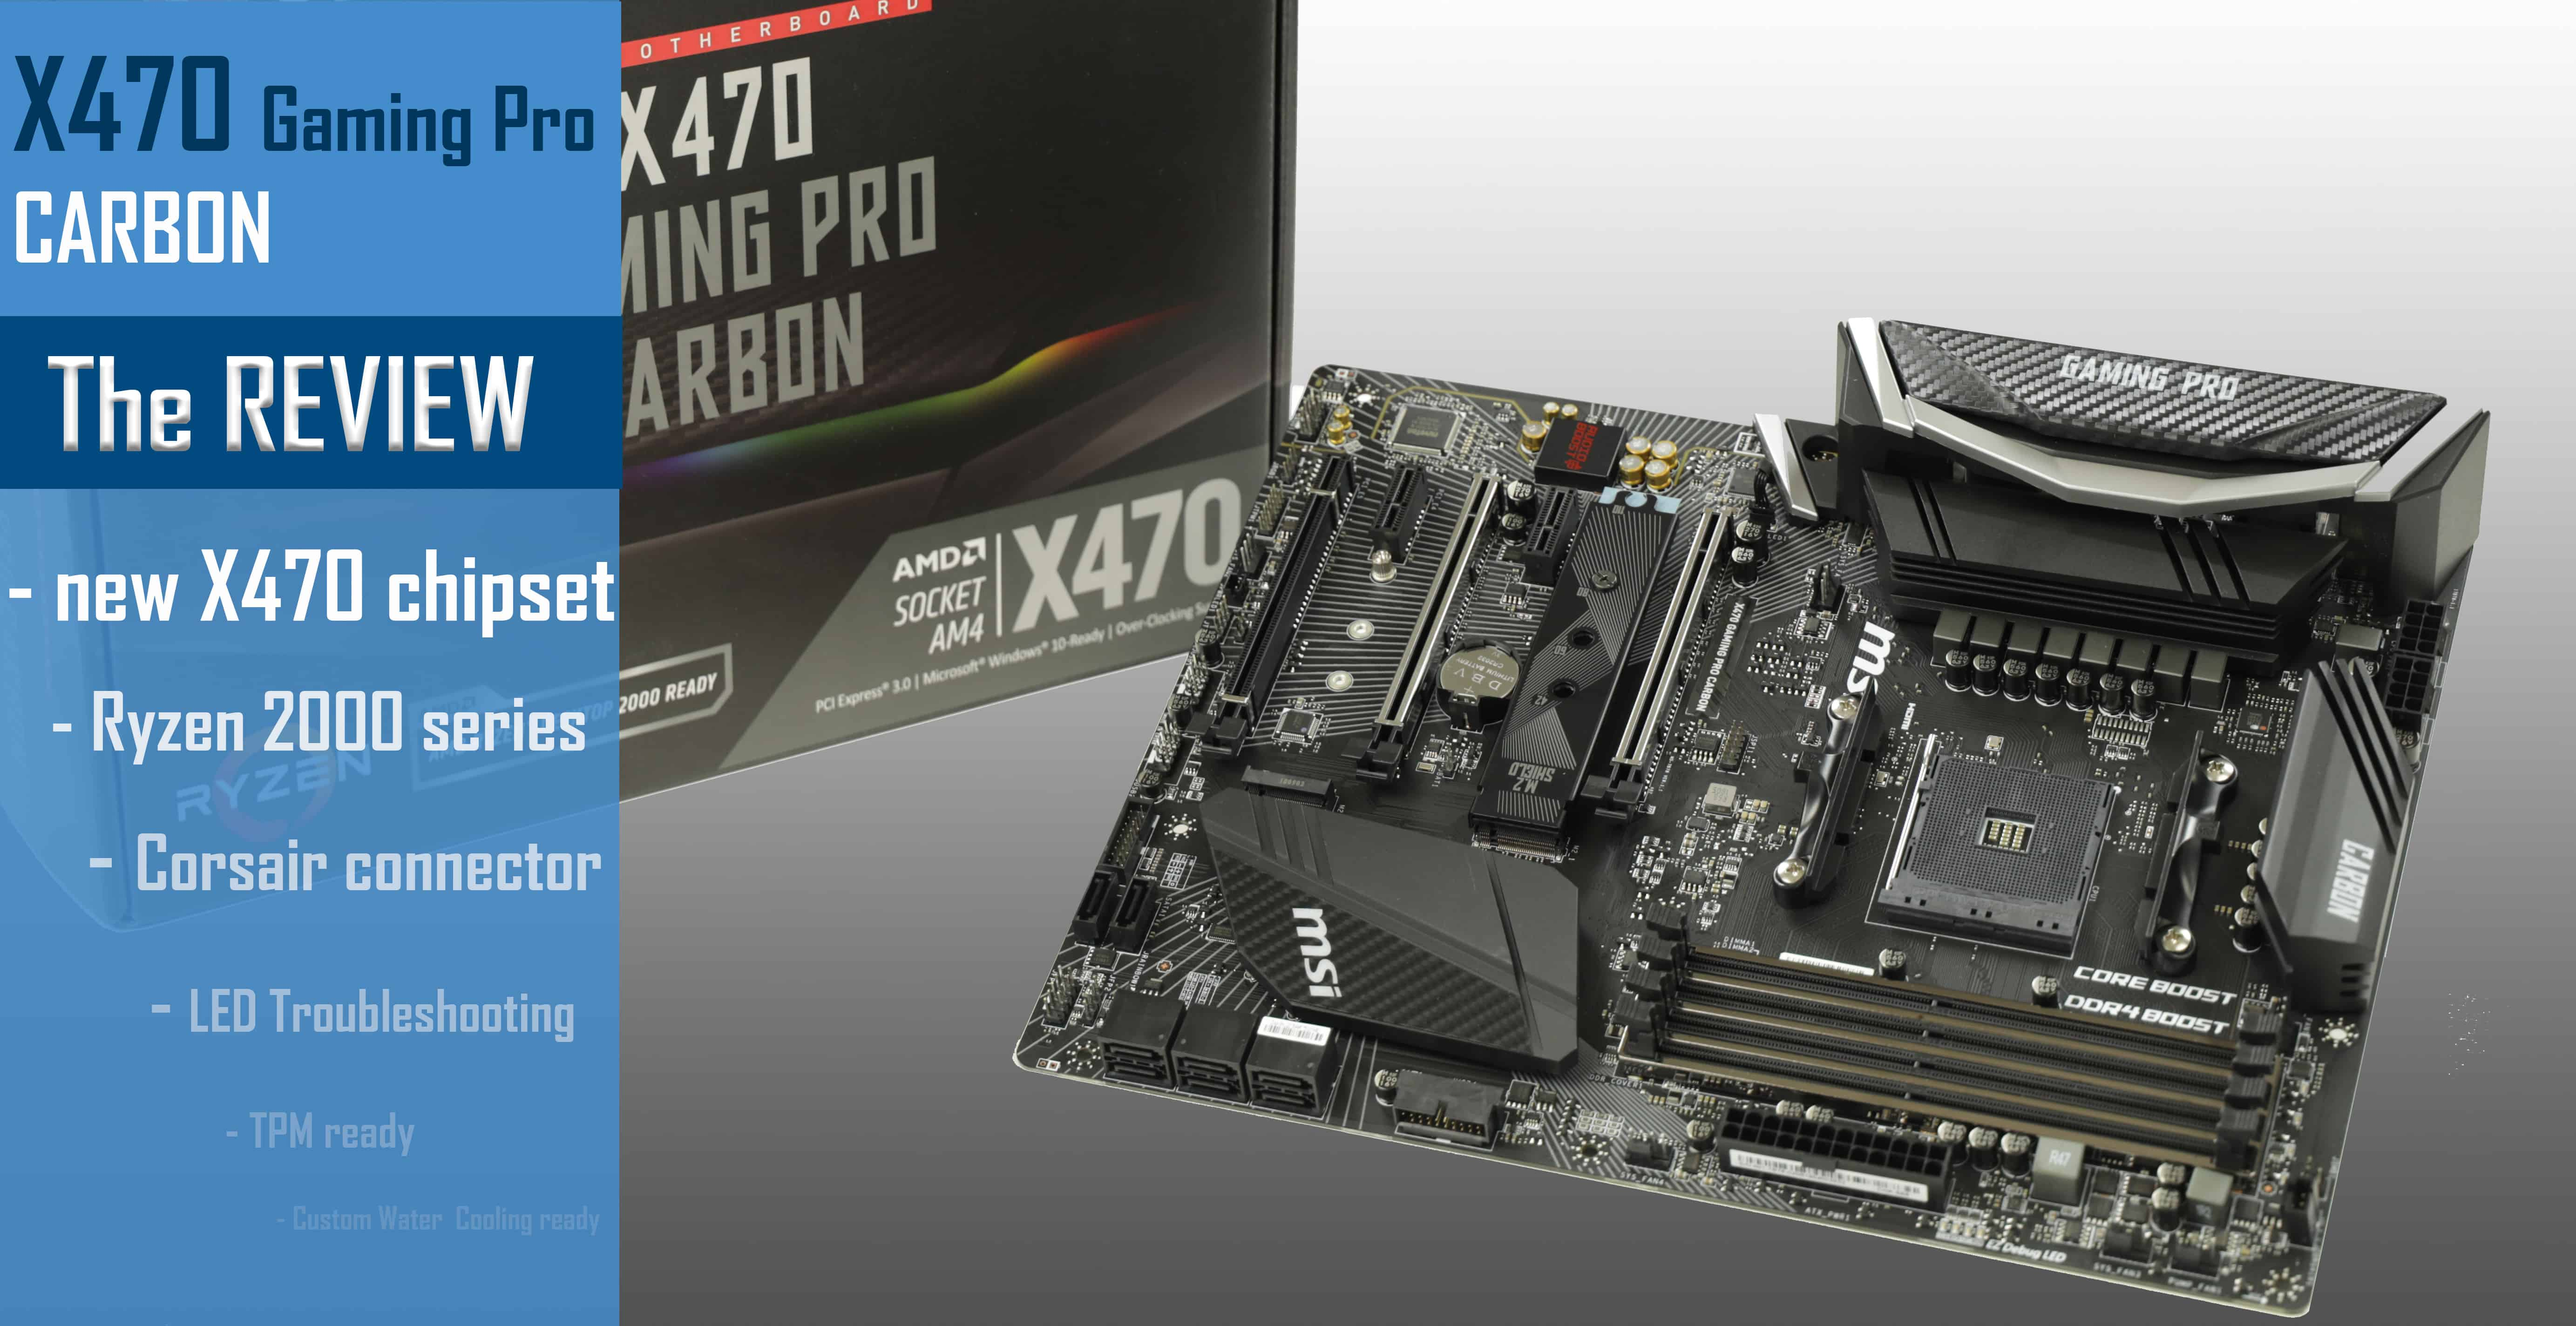 MSI X470 Gaming Pro Carbon - Laurent's Choice